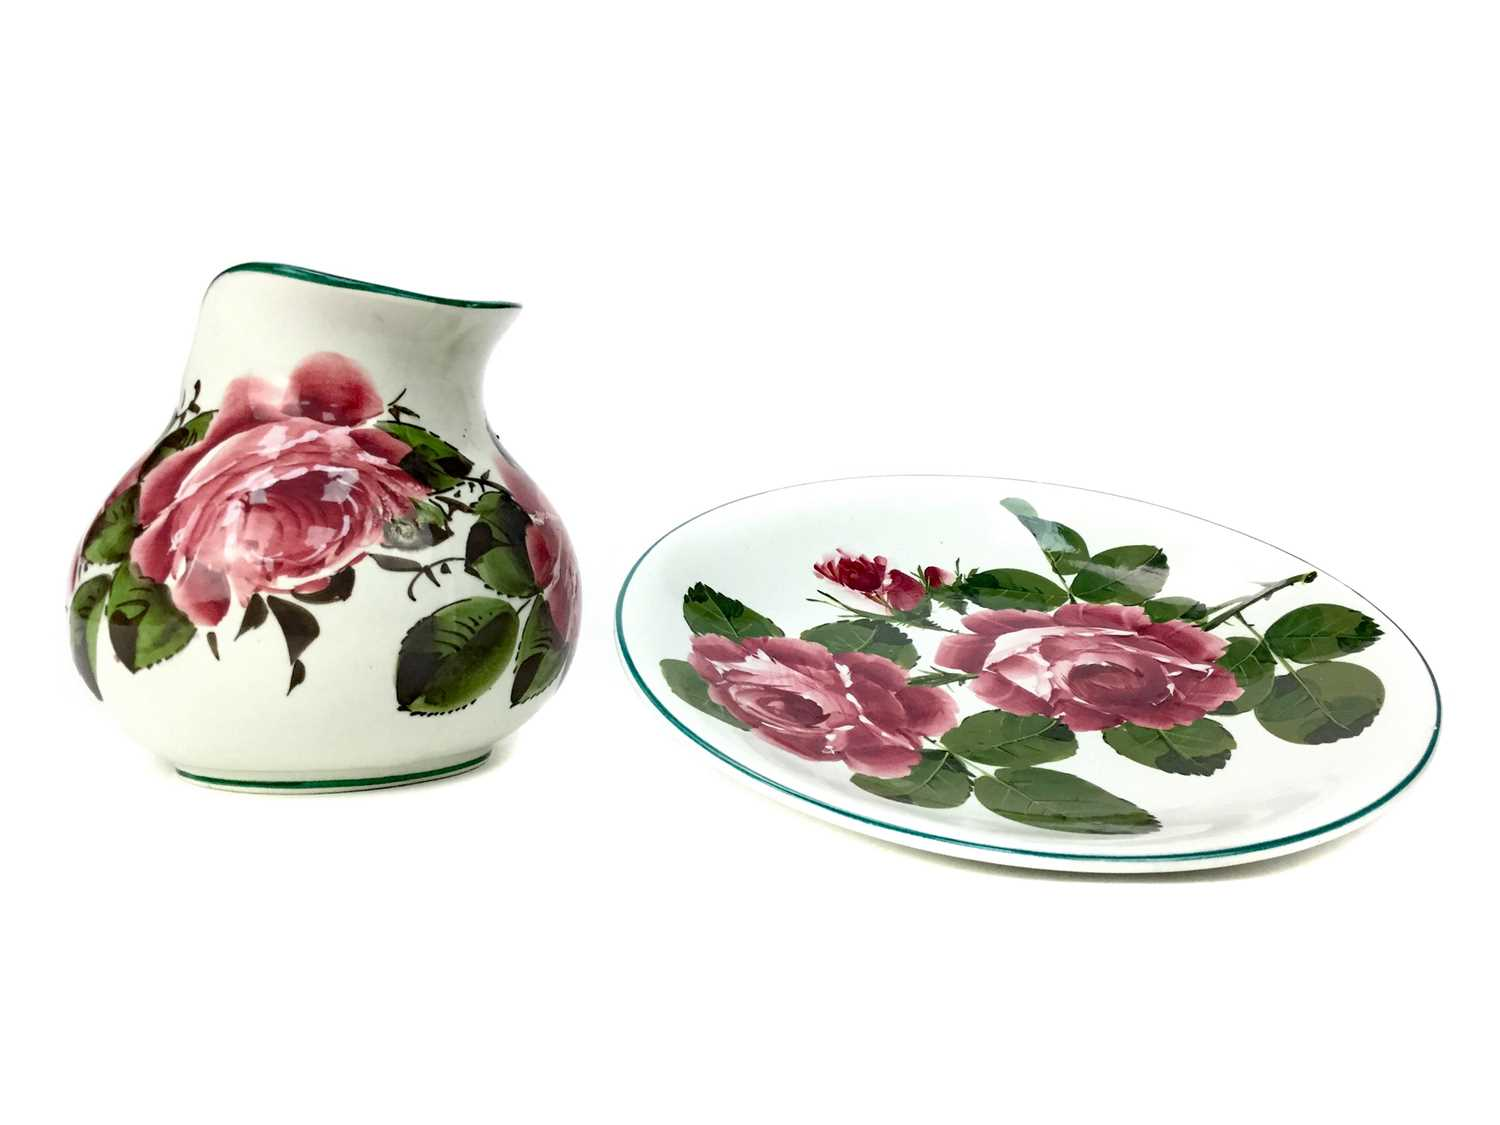 Lot 1026 - A WEMYSS WARE 'CABBAGE ROSE' PATTERN EWER AND PLATE